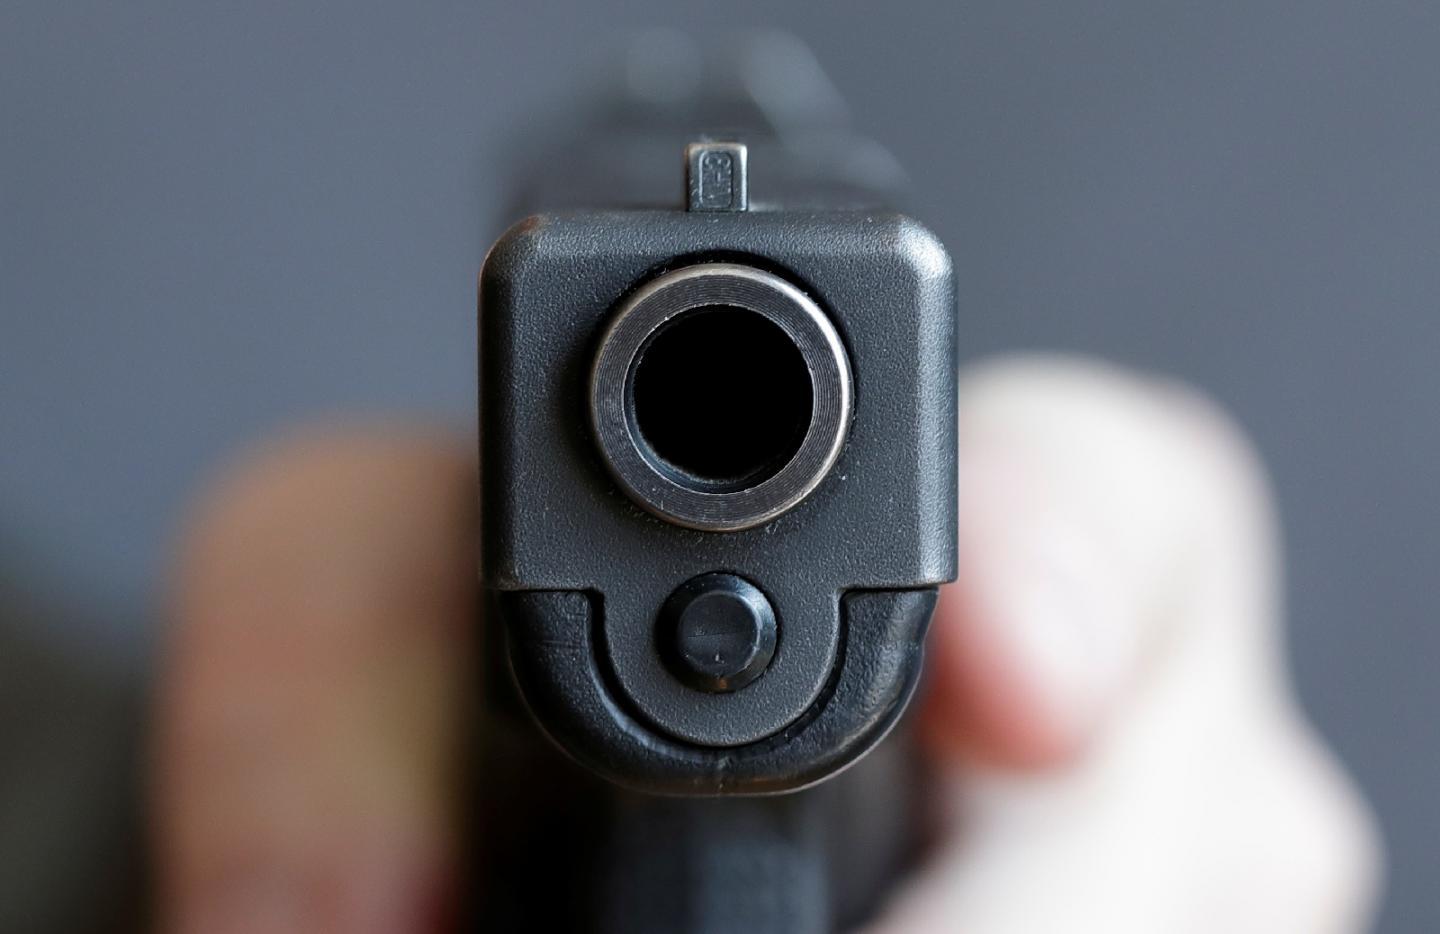 Restaurant Apologizes After Asking Officer To Leave Because He Had A Gun